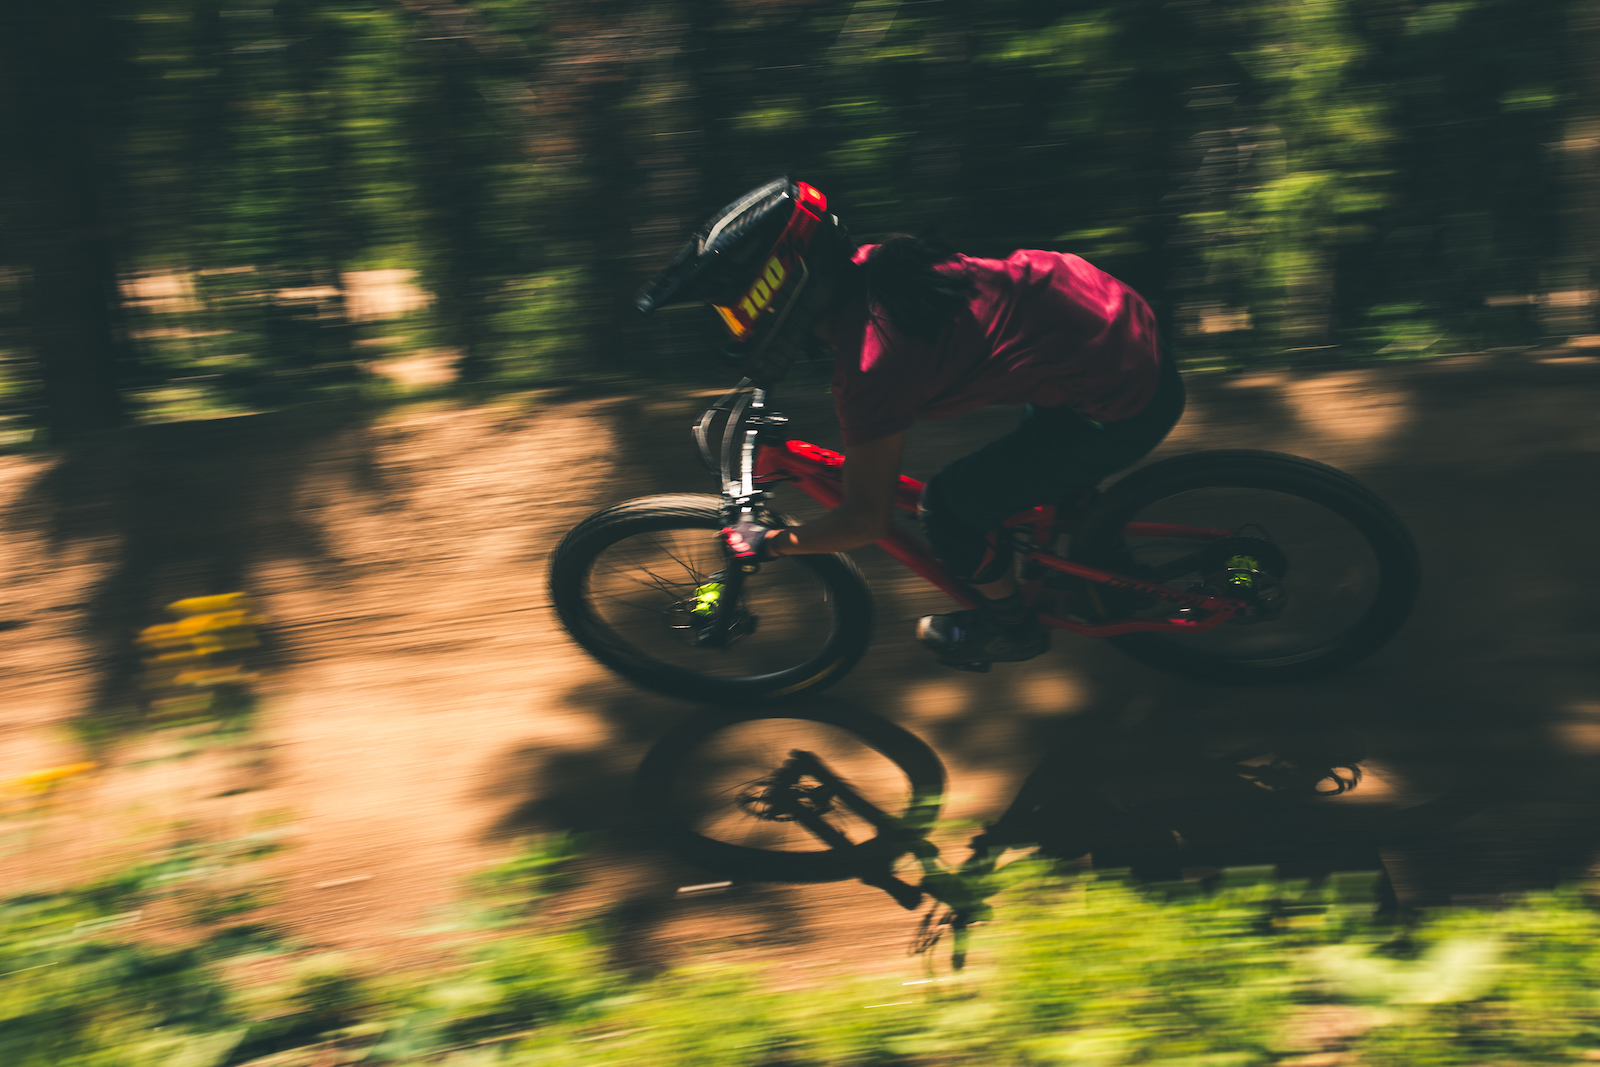 No Quarter is arguably one of the most fun trails on the mountain being a very free ride oriented trail. Wood features fast turns and big jumps make this one of a kind trail.